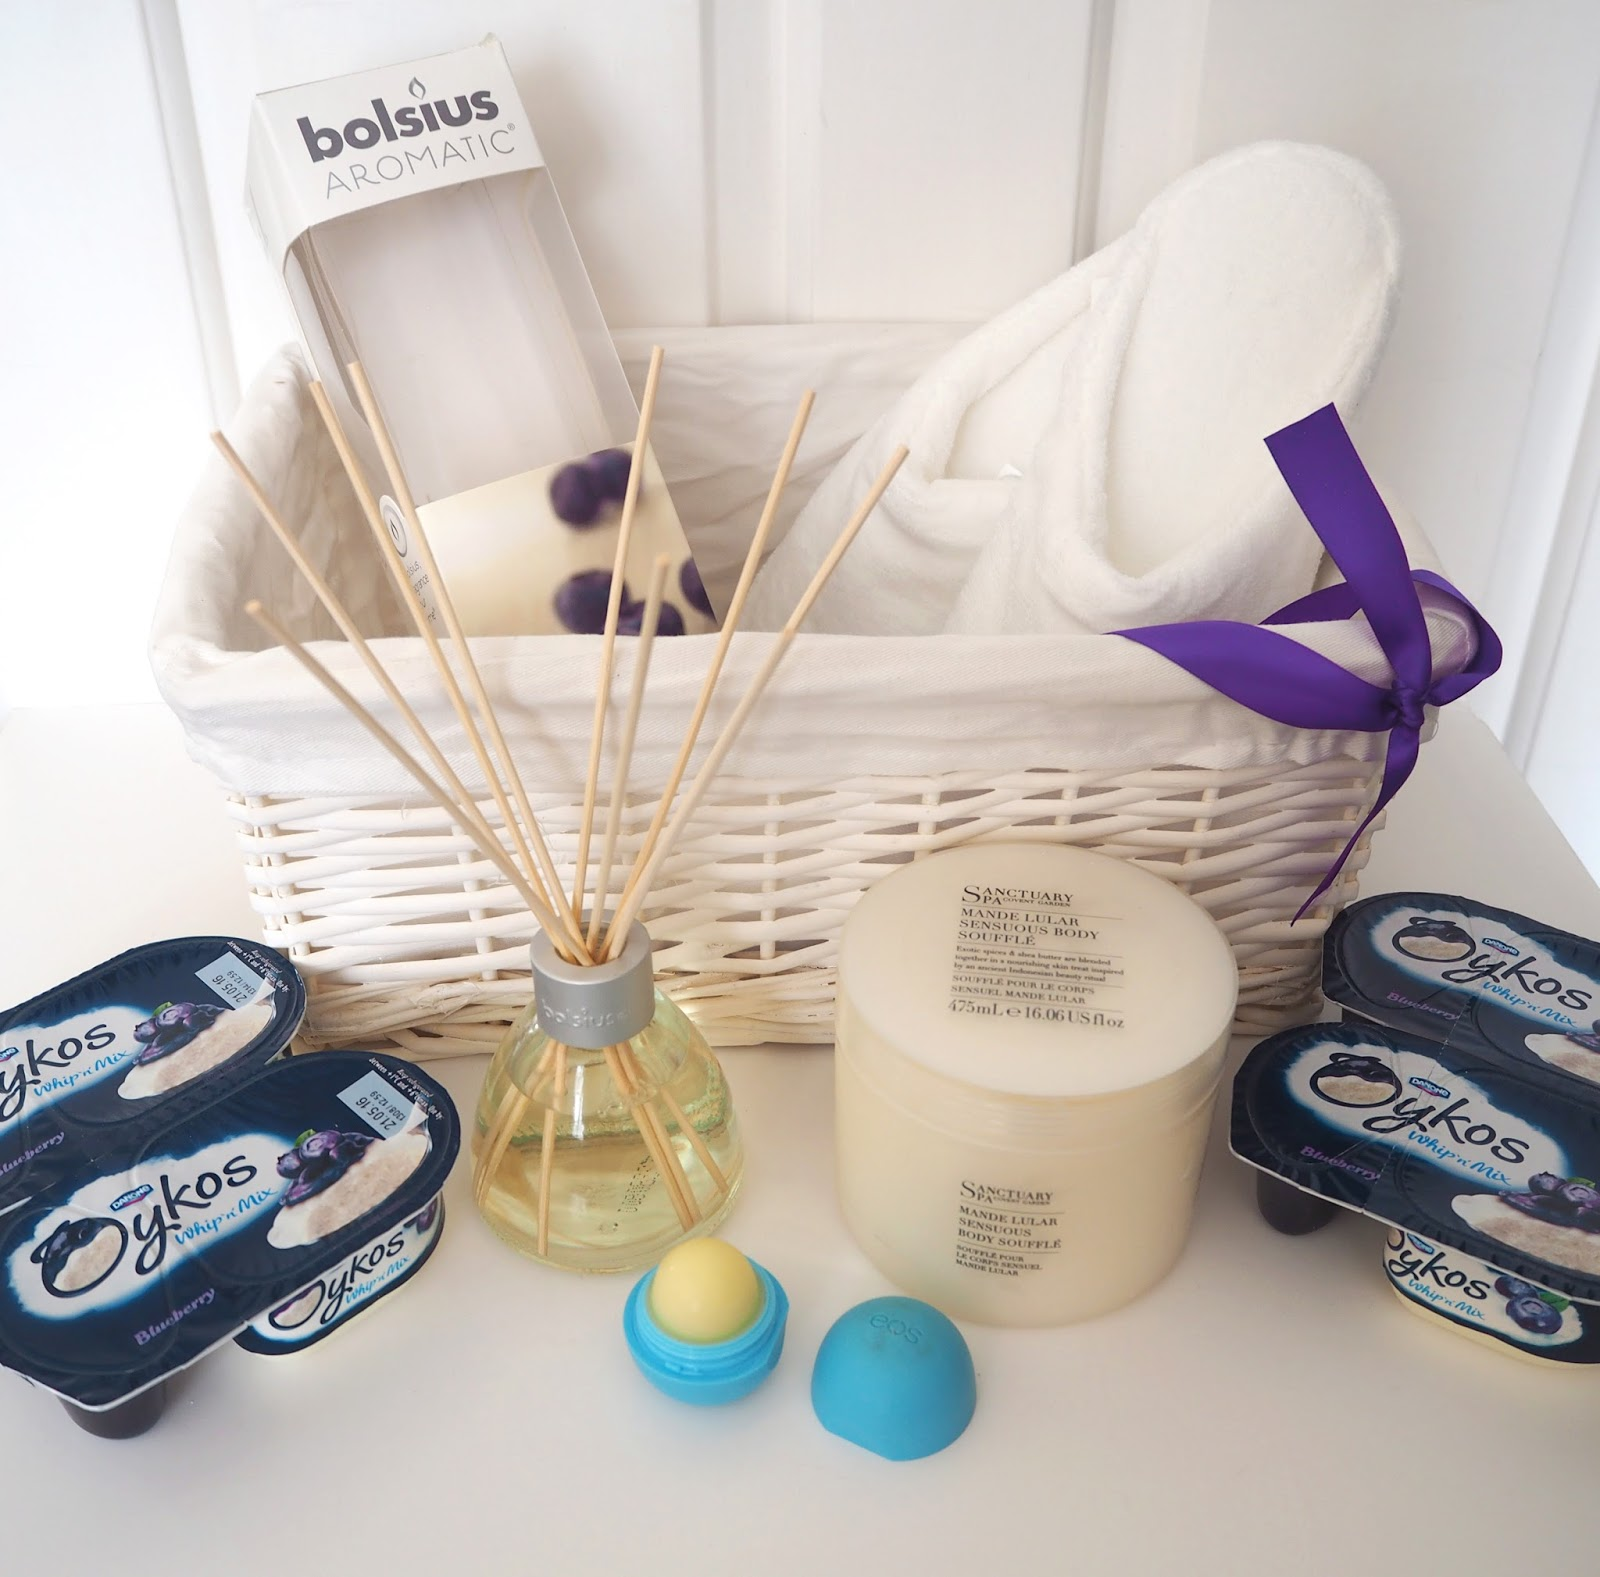 Blueberry Spa Products Courtesy of Oykos